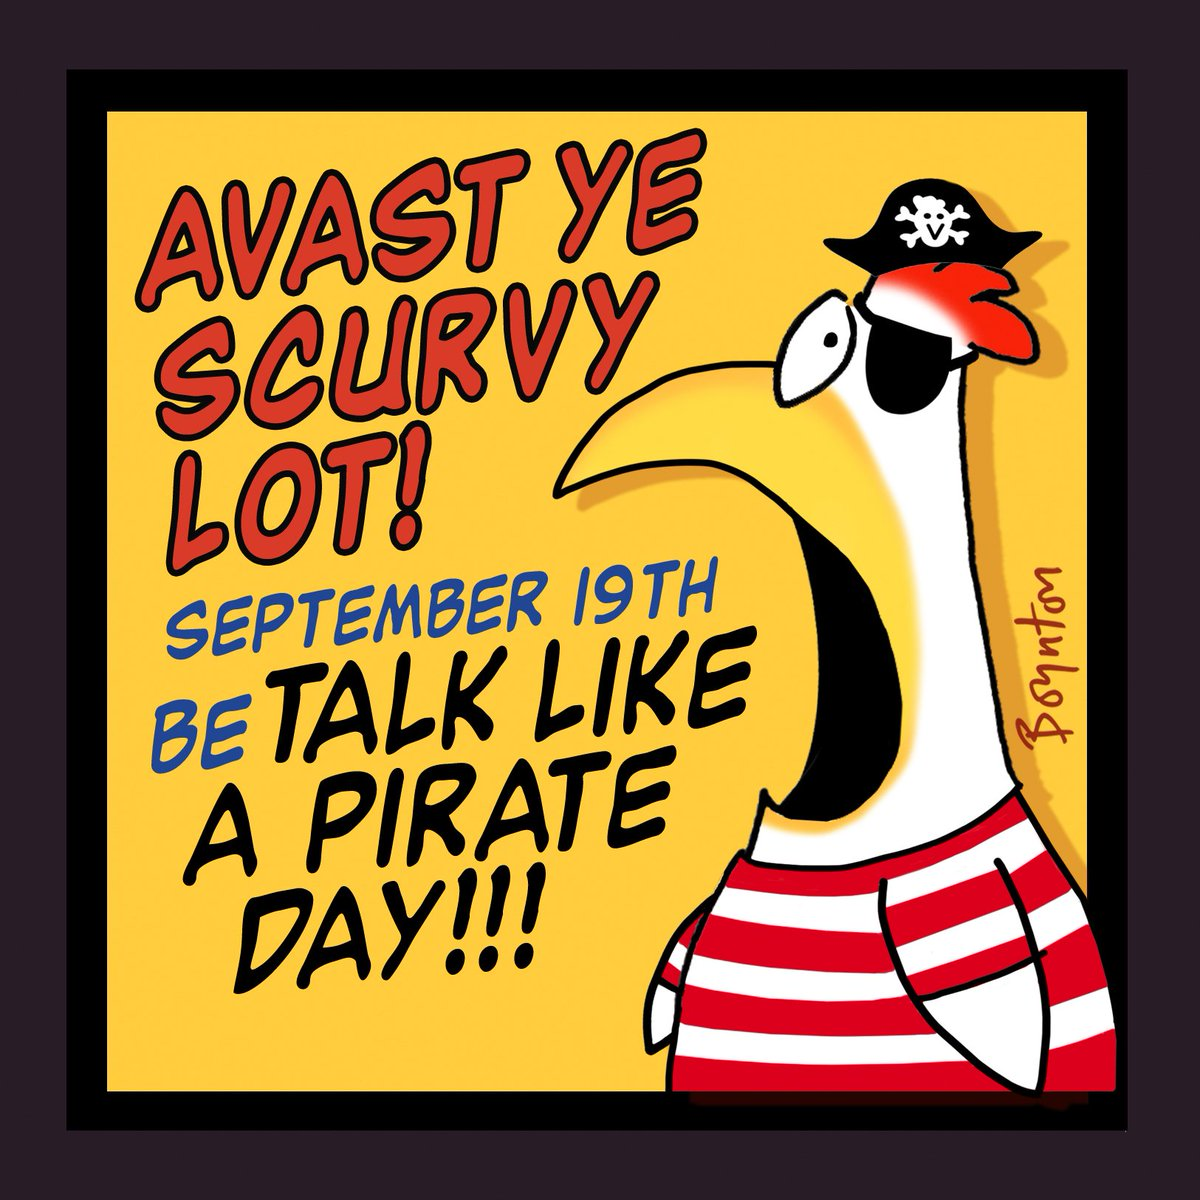 AHOY! It be #talklikeapirateday https://t.co/0xksr9ugoT